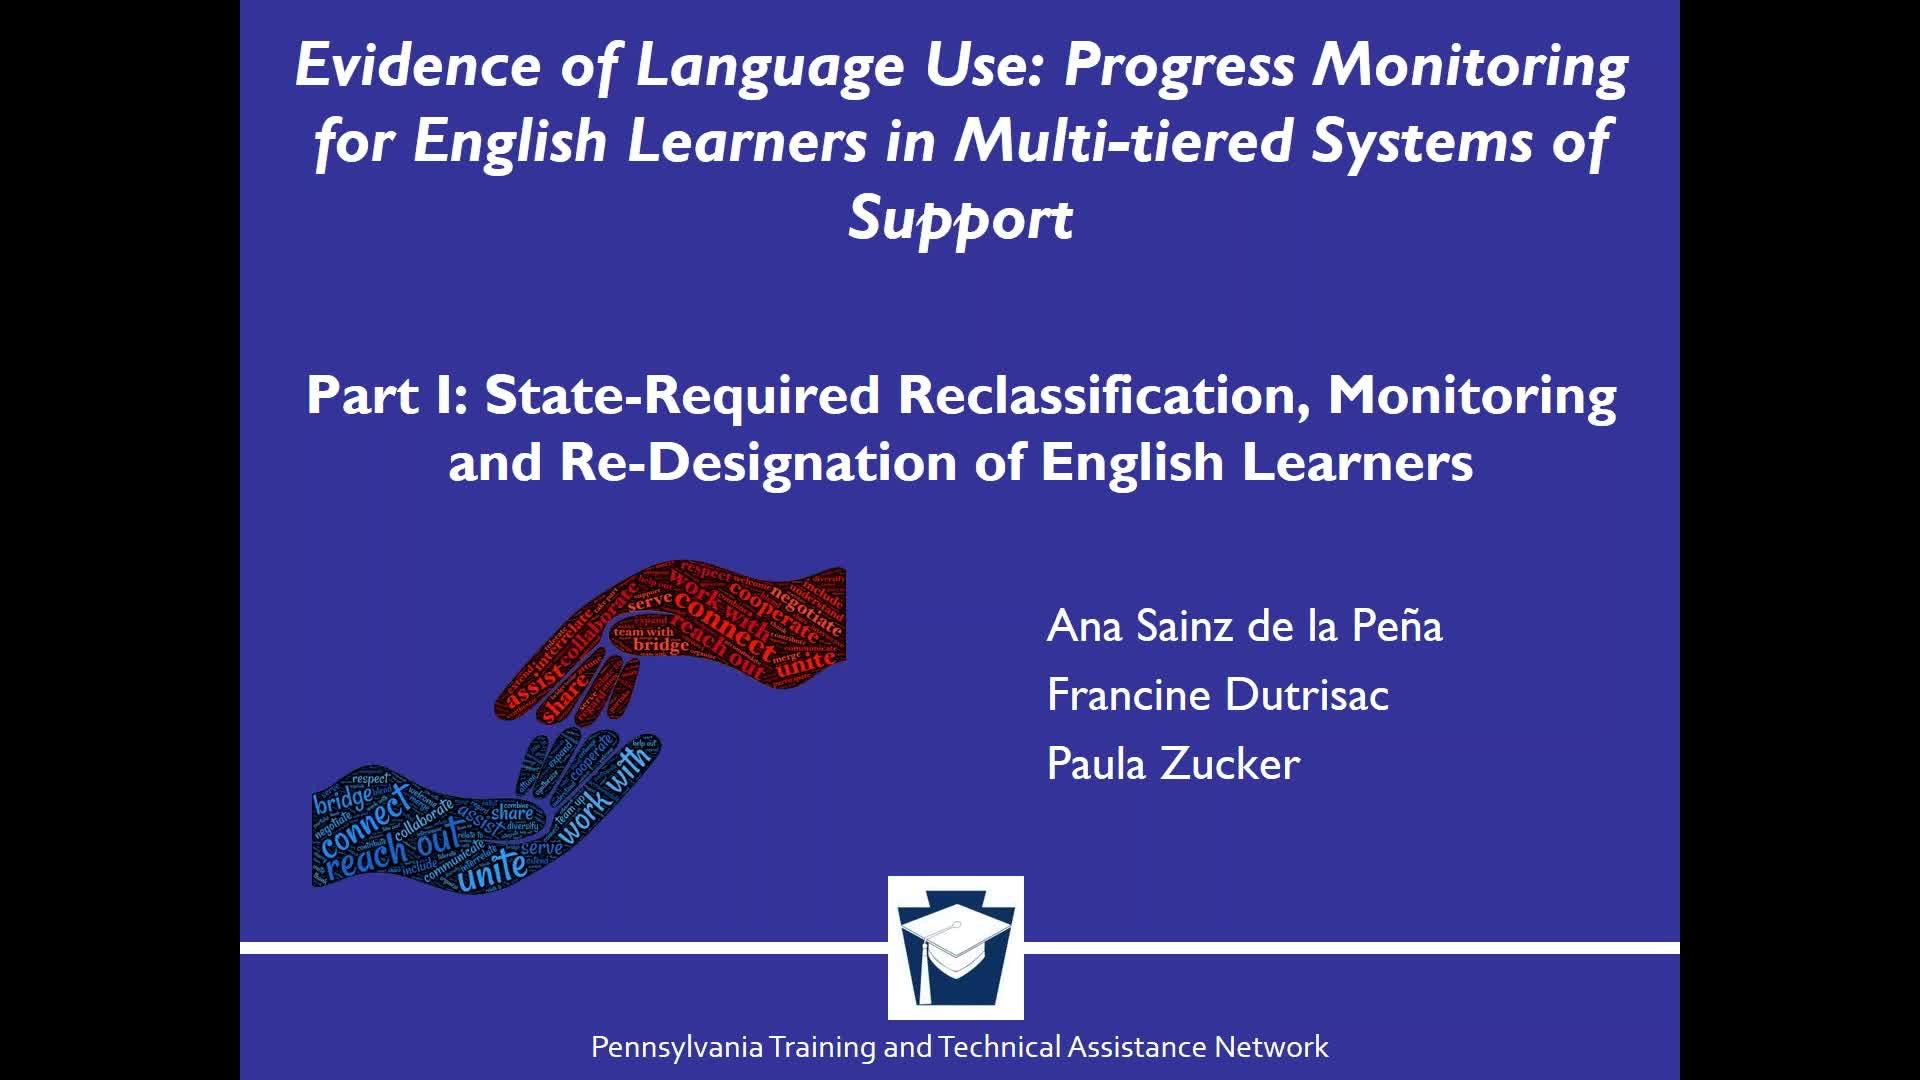 Evidence of Language Use: Progress Monitoring for English Learners in Multi tiered Systems of Support - Part I: State Required Reclassification, Monitoring and Re Designation of English Learners